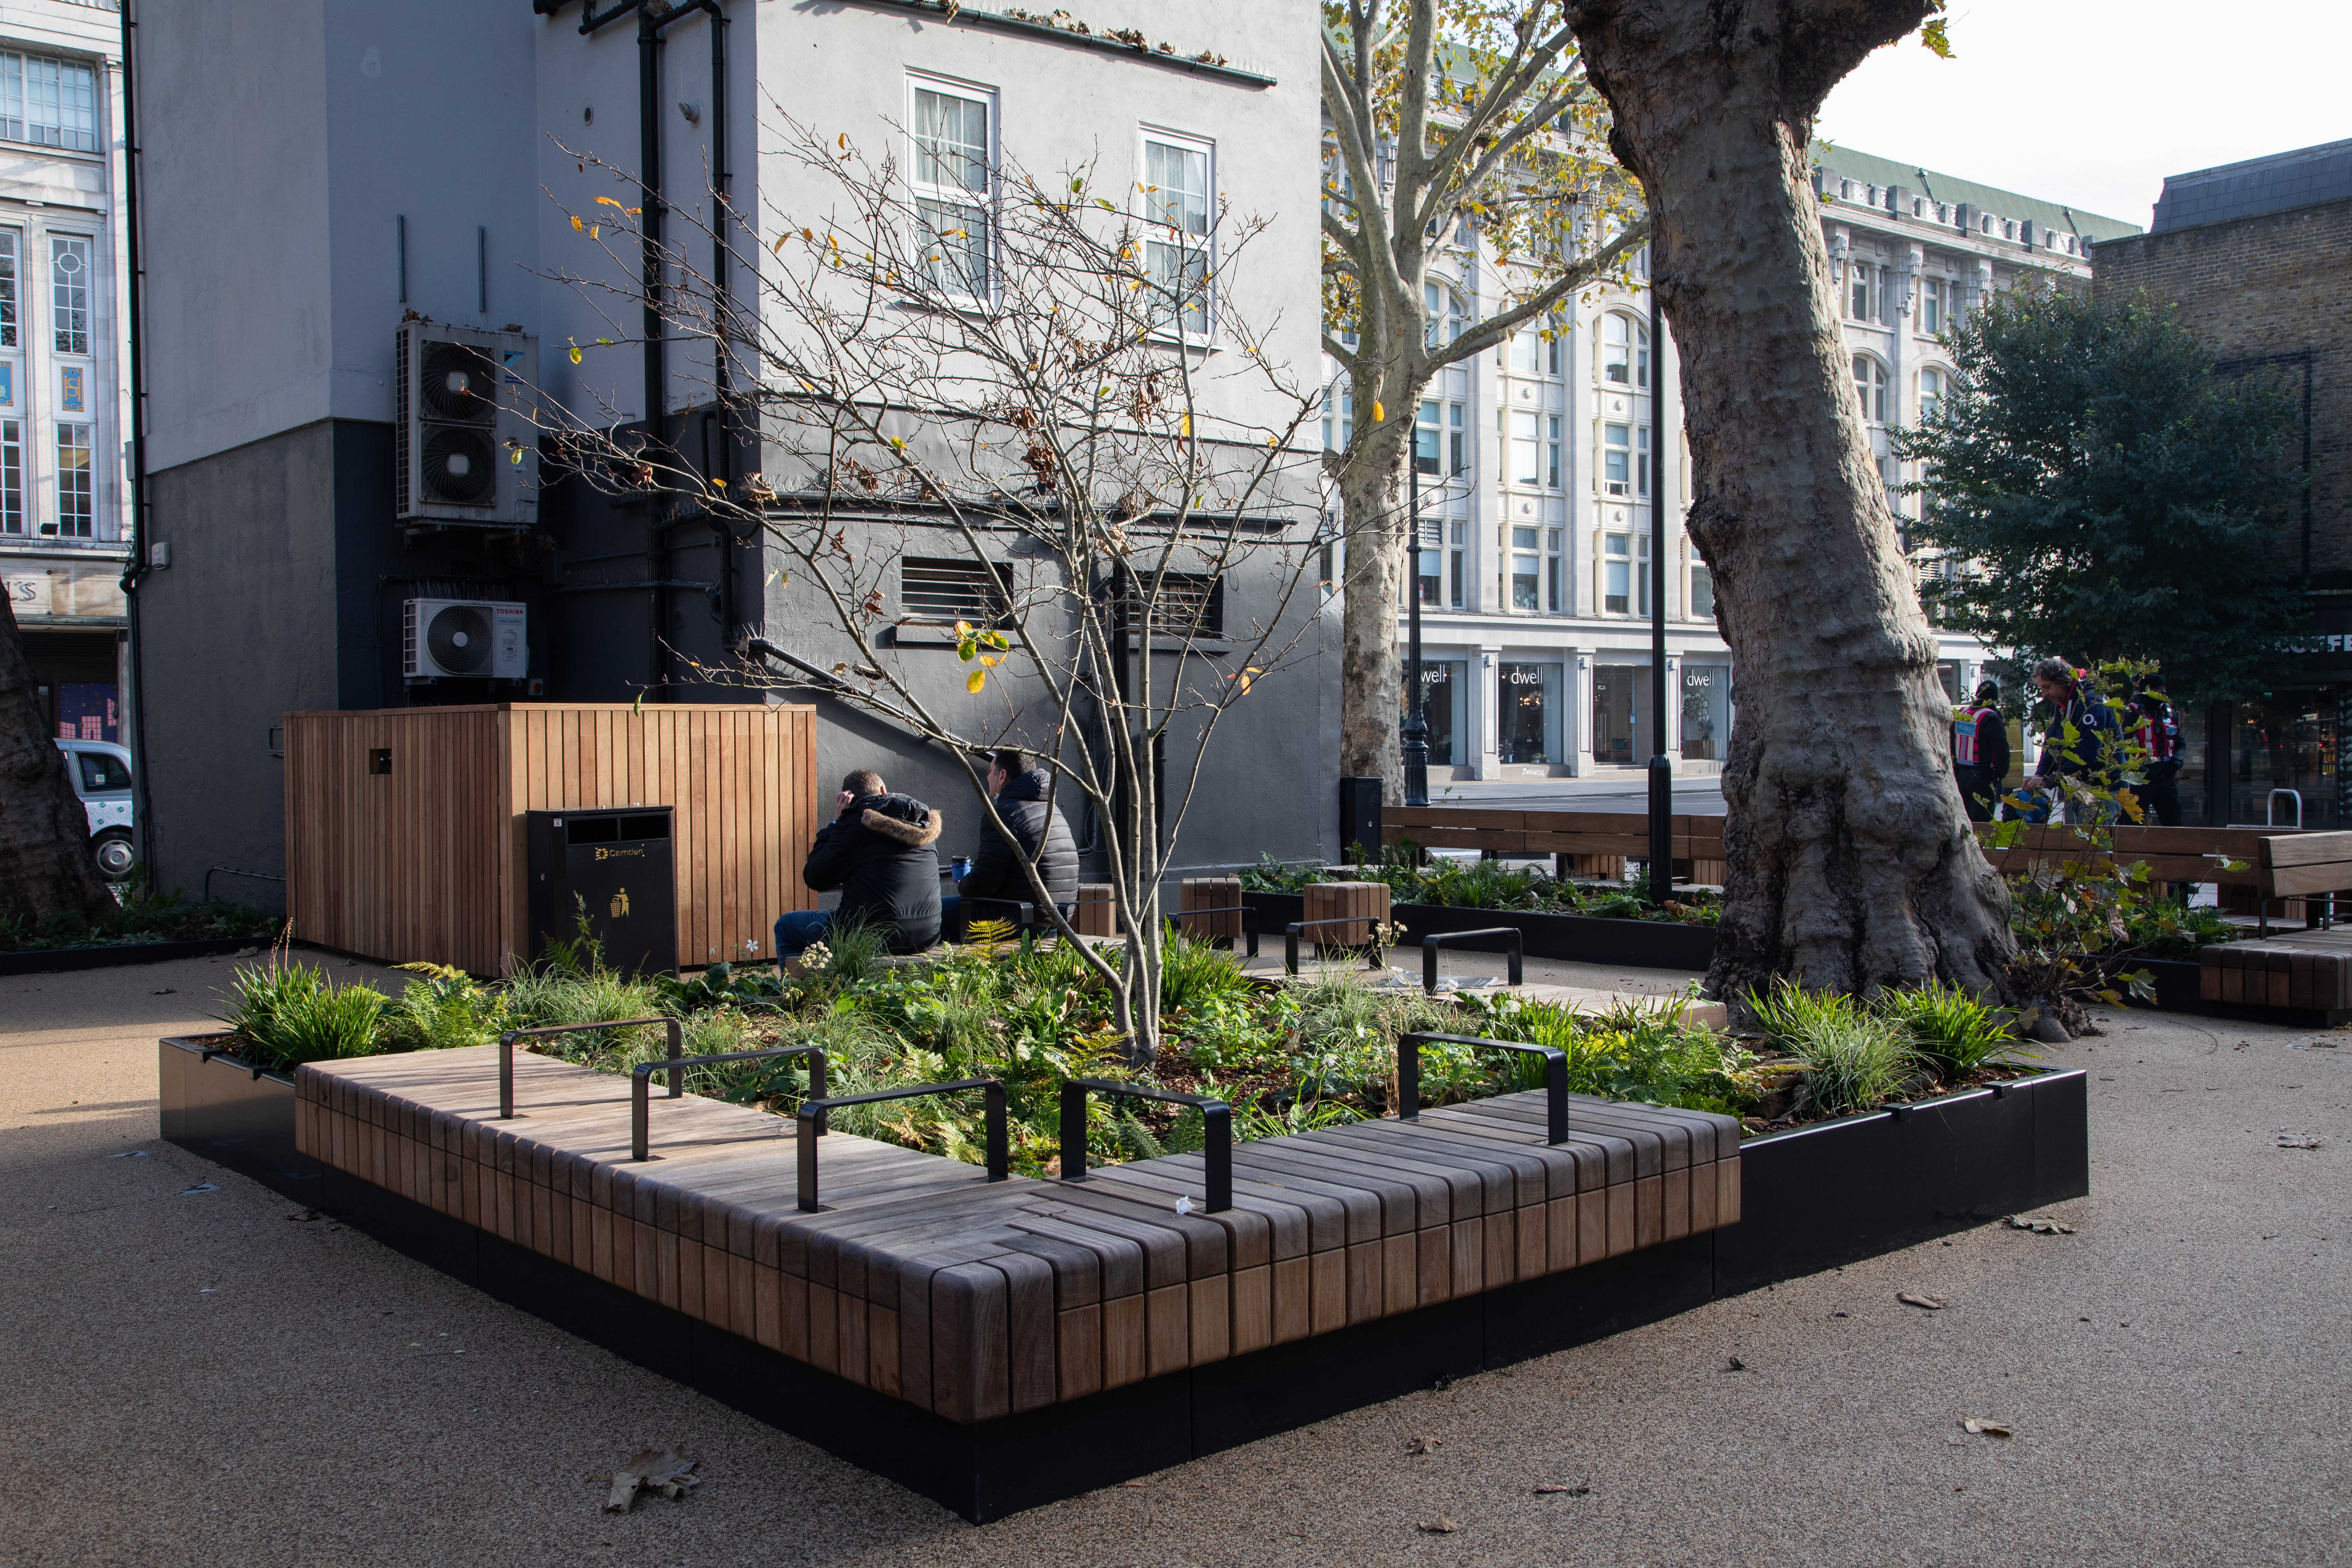 View of Whitfield Gardens after restoration showing new planting beds